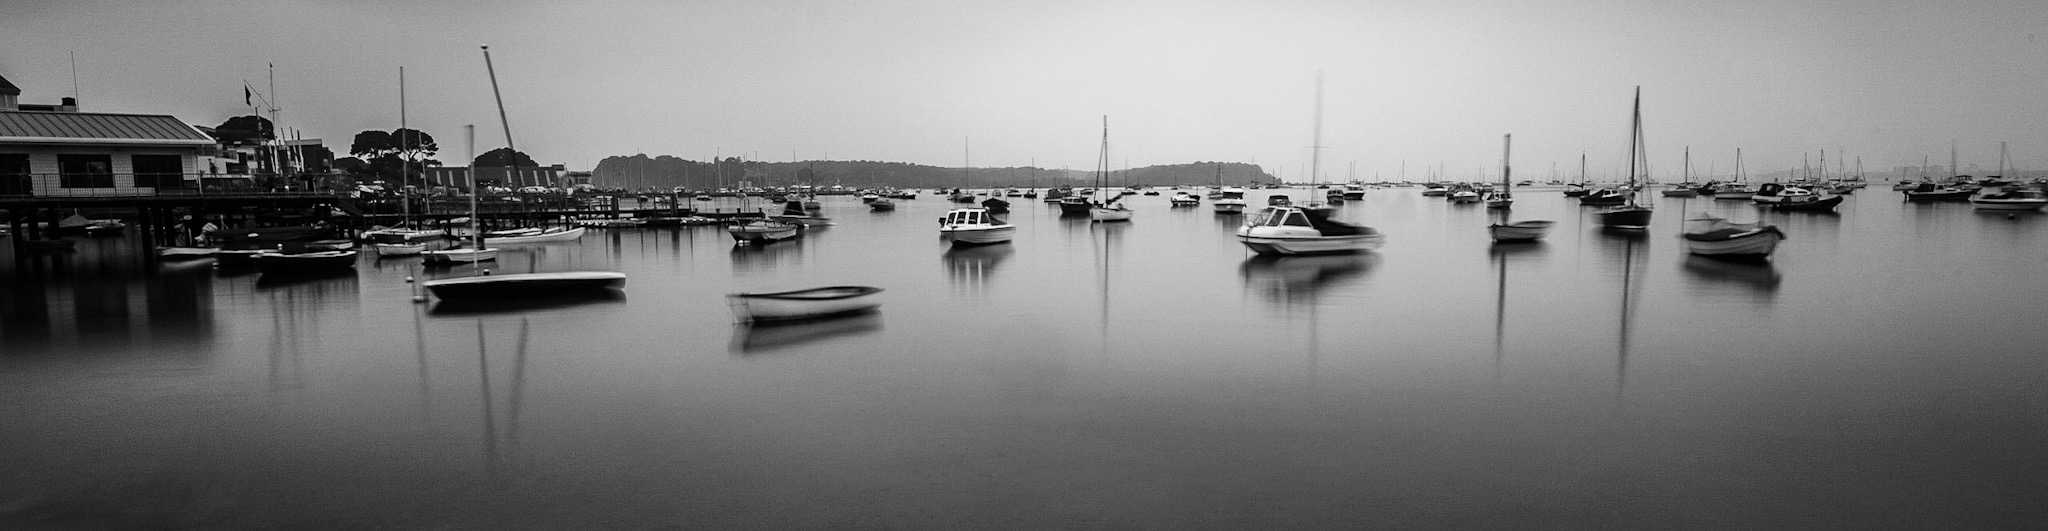 Lovely flat water and Brownsea Island in the background by Sandbanks Photographer Rick McEvoy